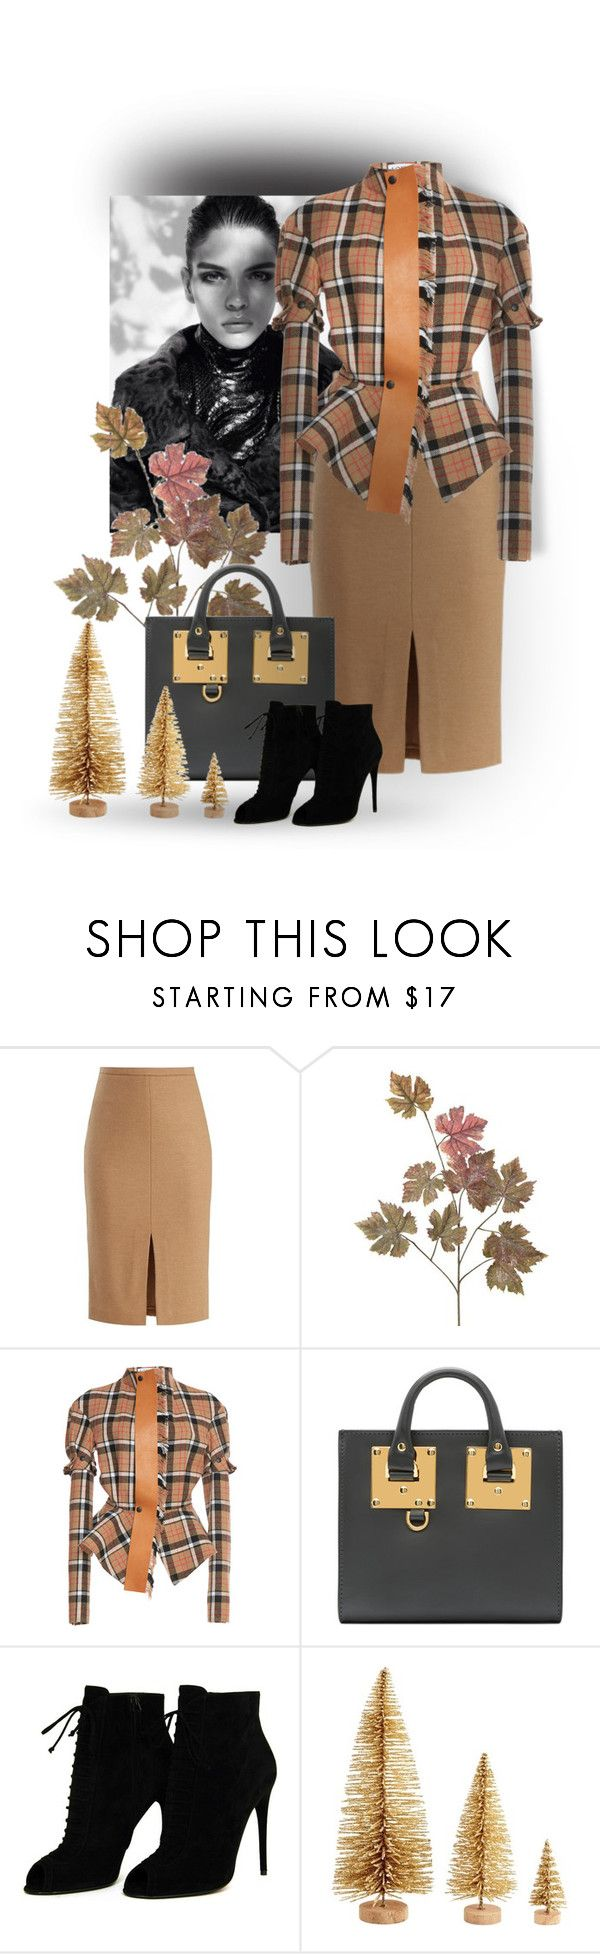 """Plaid jacket"" by gagenna ❤ liked on Polyvore featuring Trilogy, MaxMara, Loewe, Sophie Hulme, Tom Ford, plaid and pencilskirt"